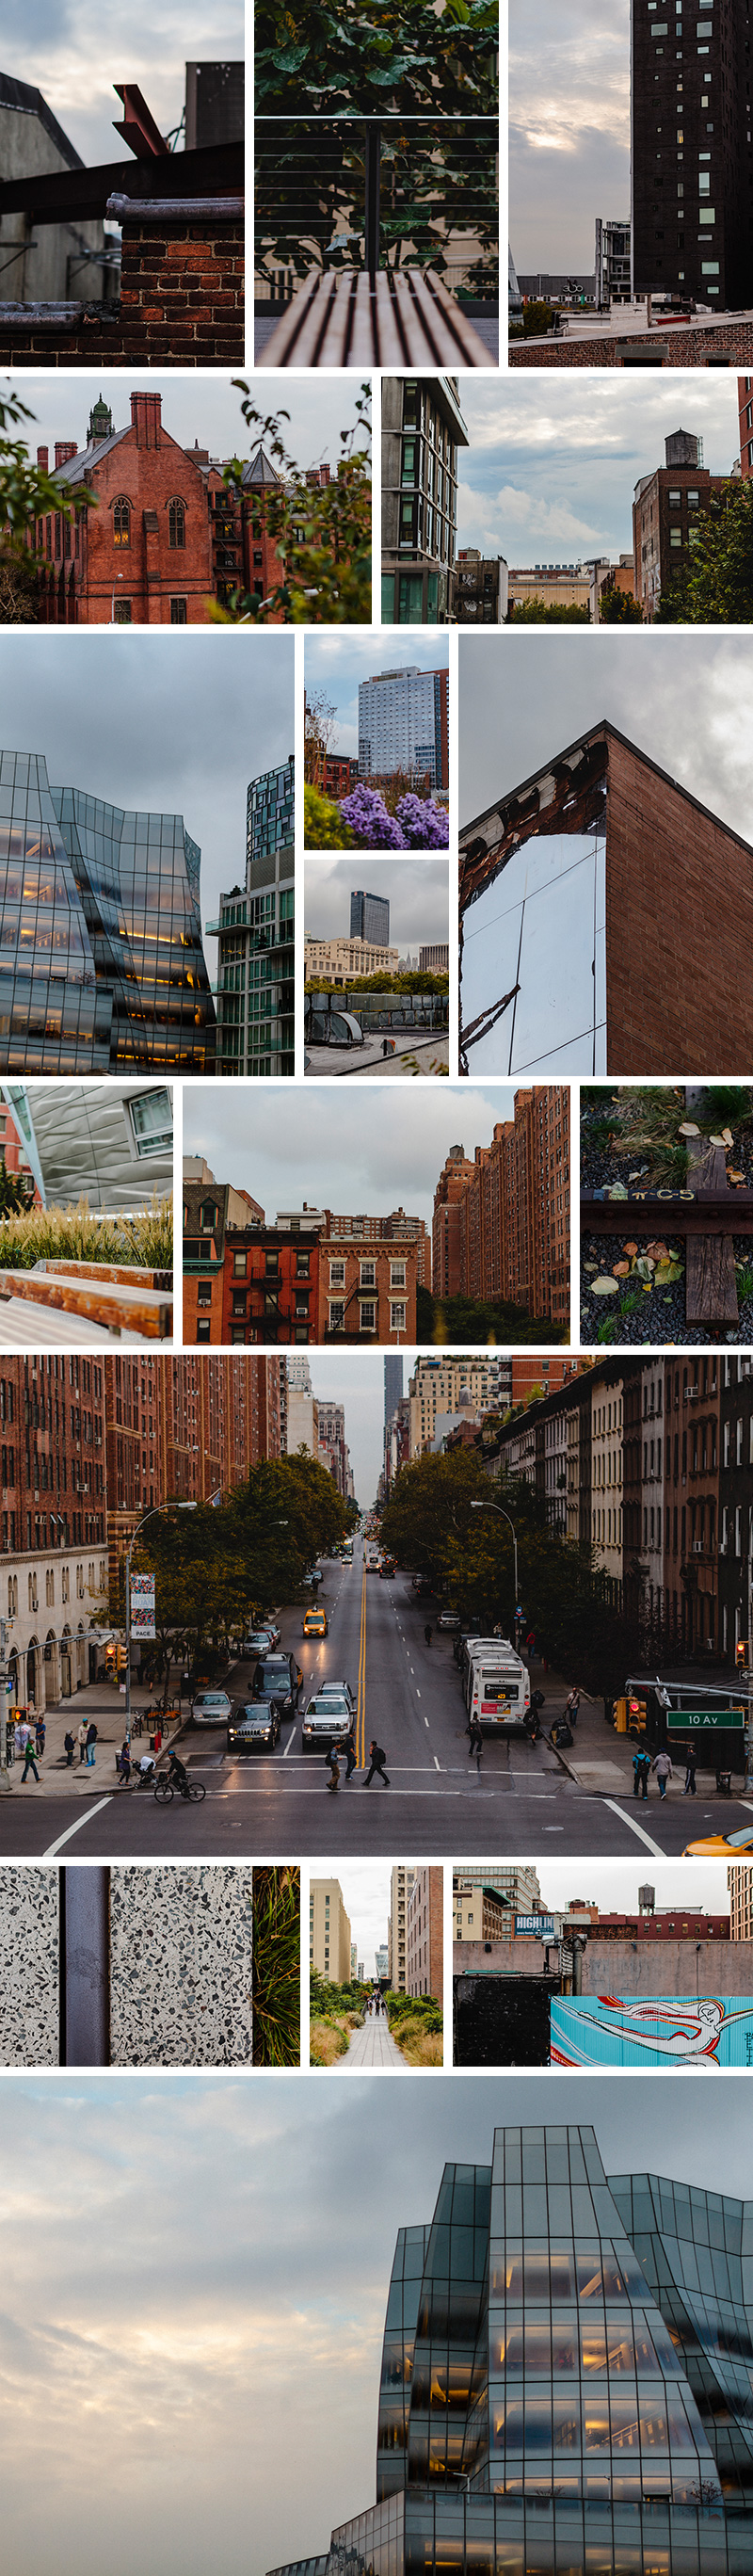 Photographs from The Highline in Manhattan off 10th Avenue